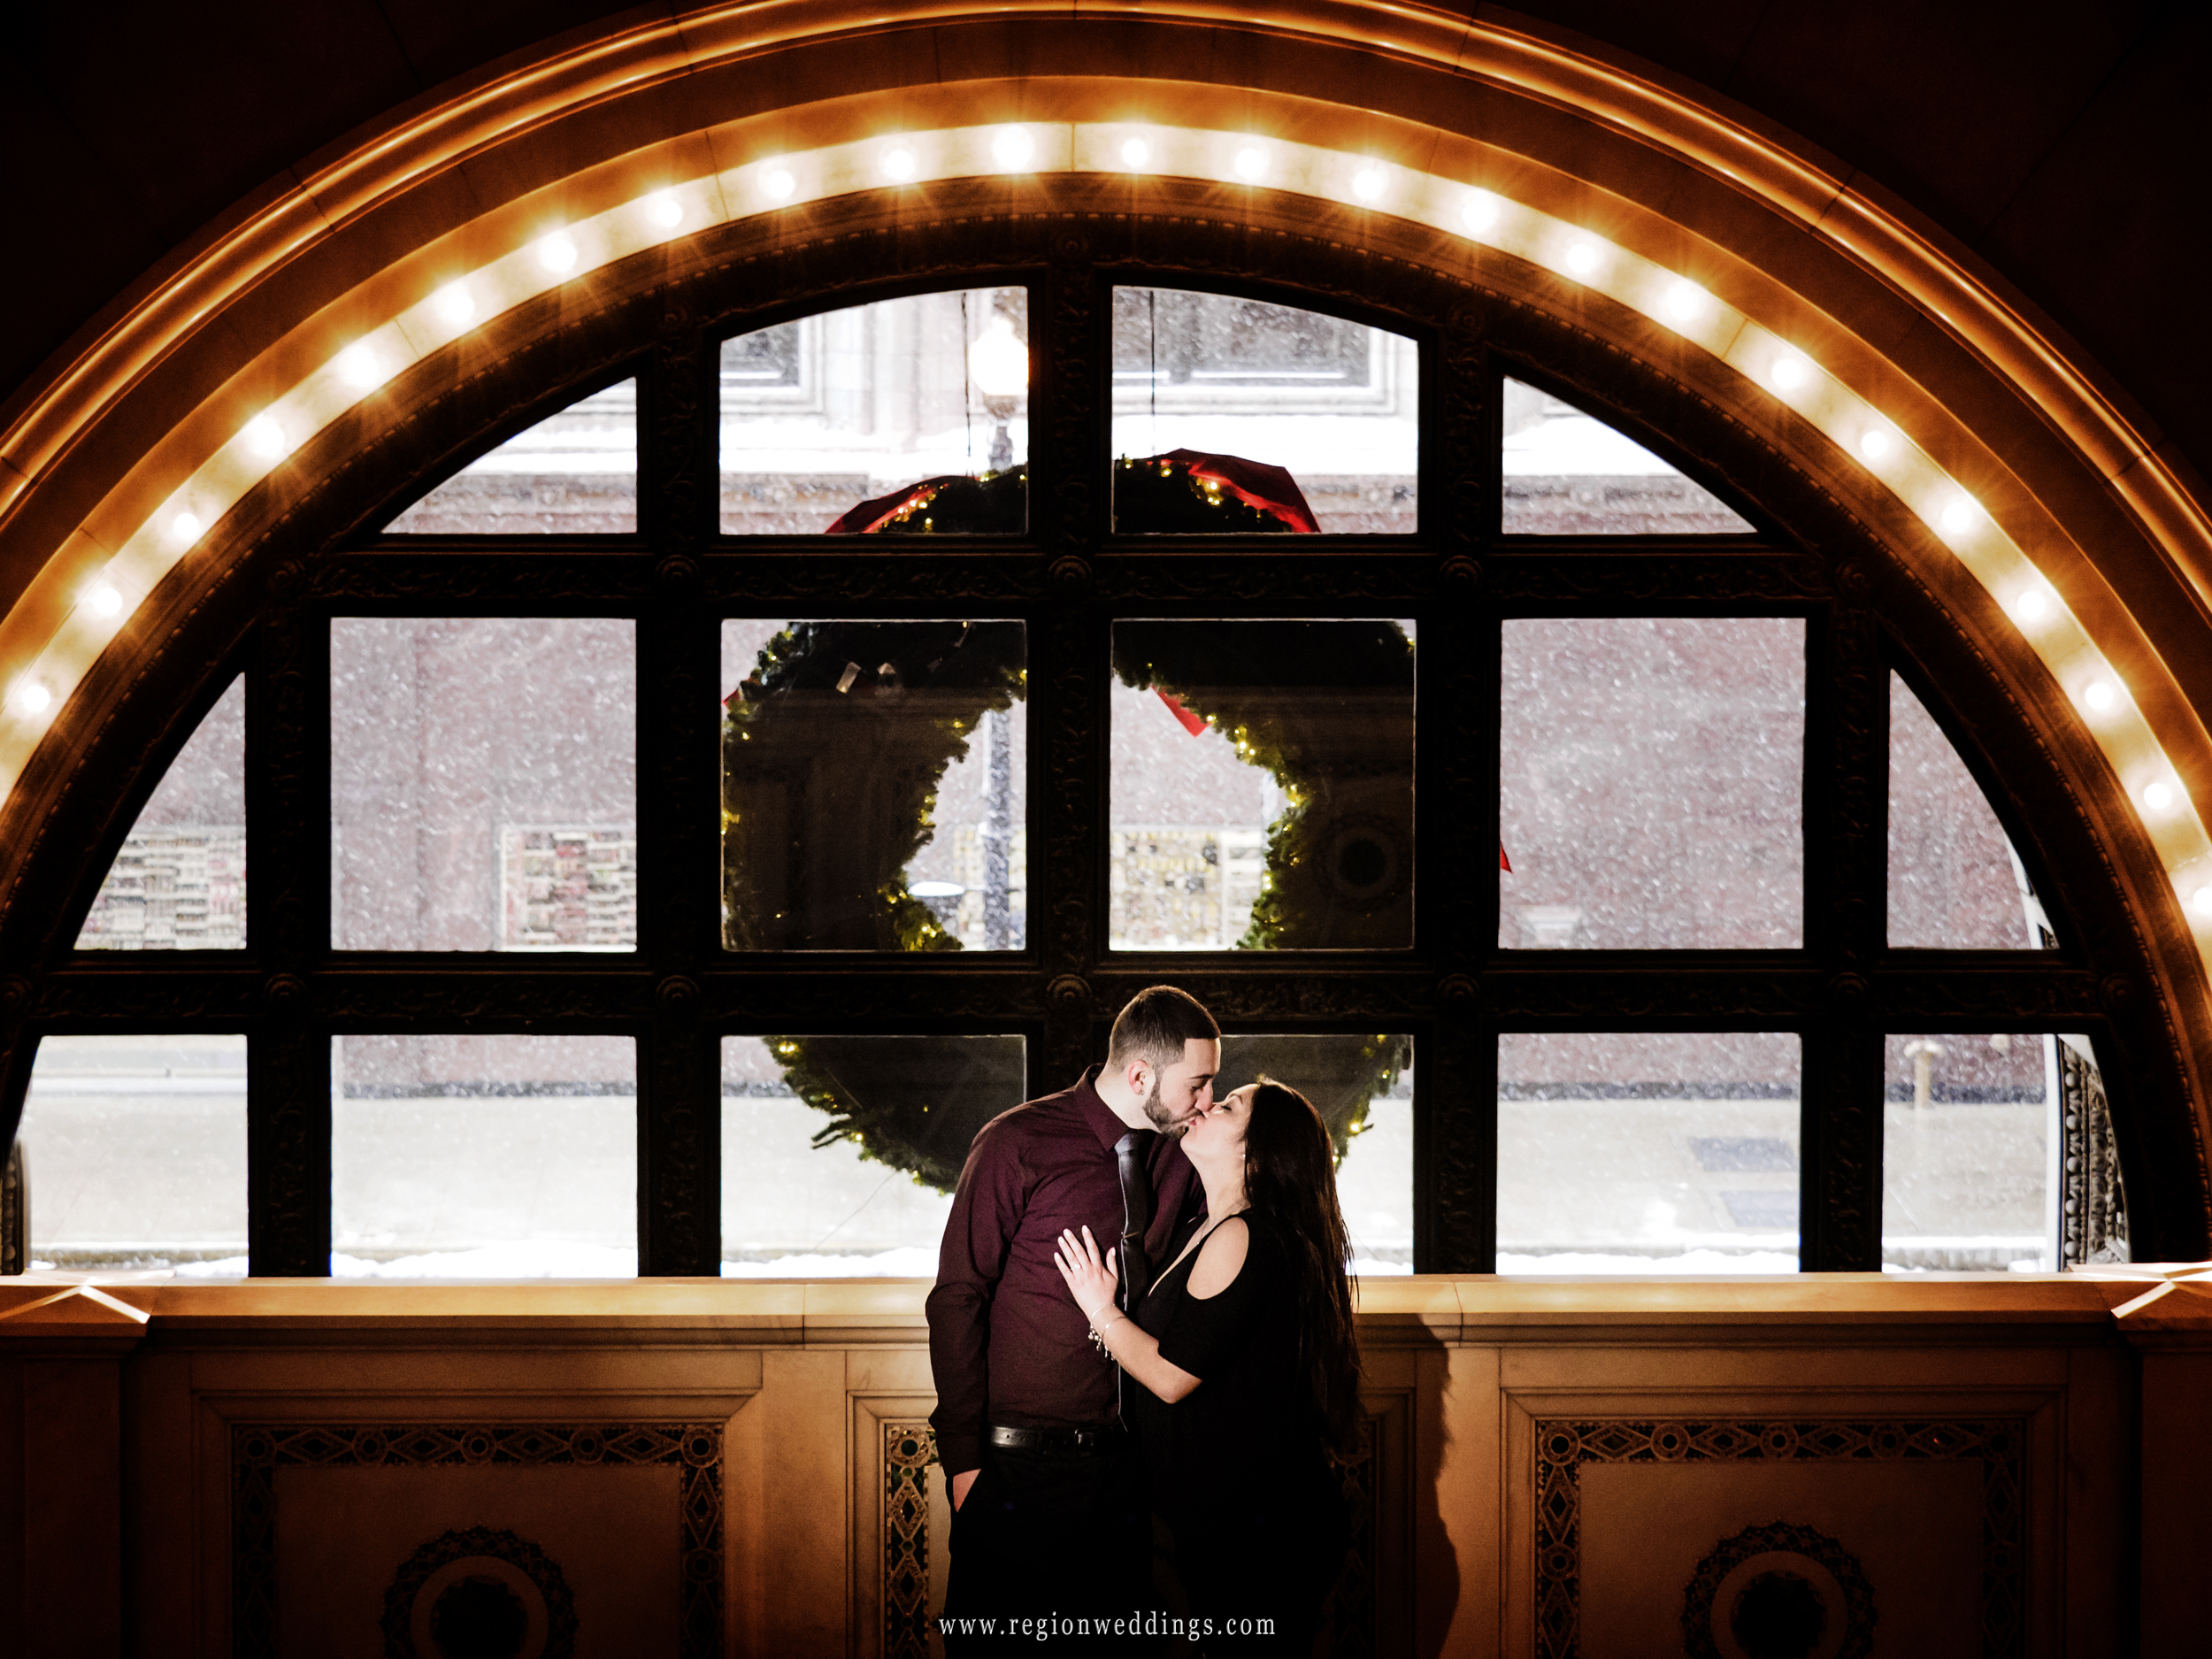 A newly engaged couple kisses by the lighted arch inside The Chicago Cultural Center.